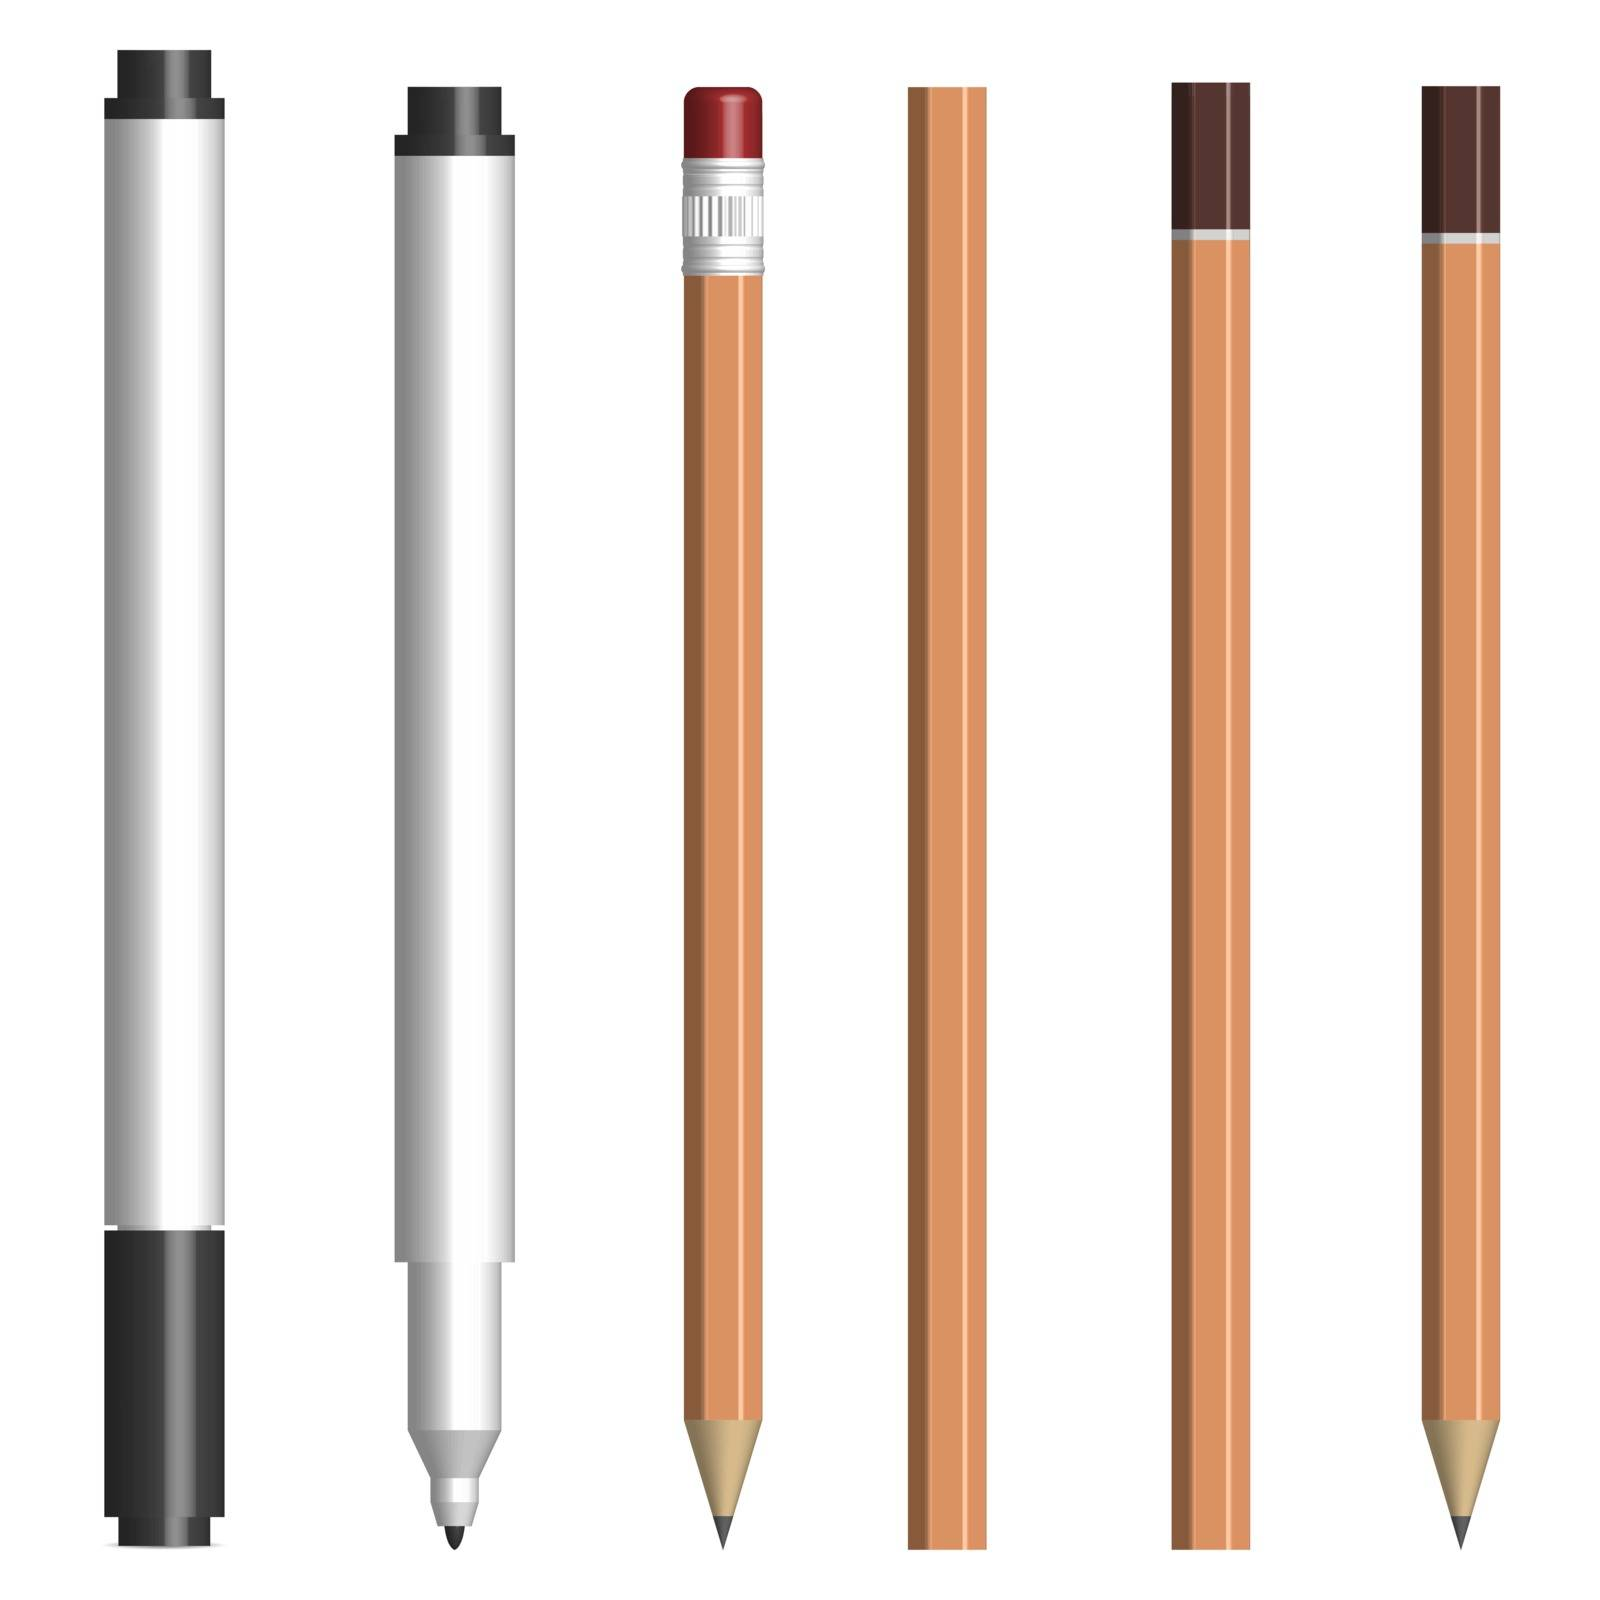 Set of different text markers and pencils, with and without a cup. Isolated on white background, vector illustration.